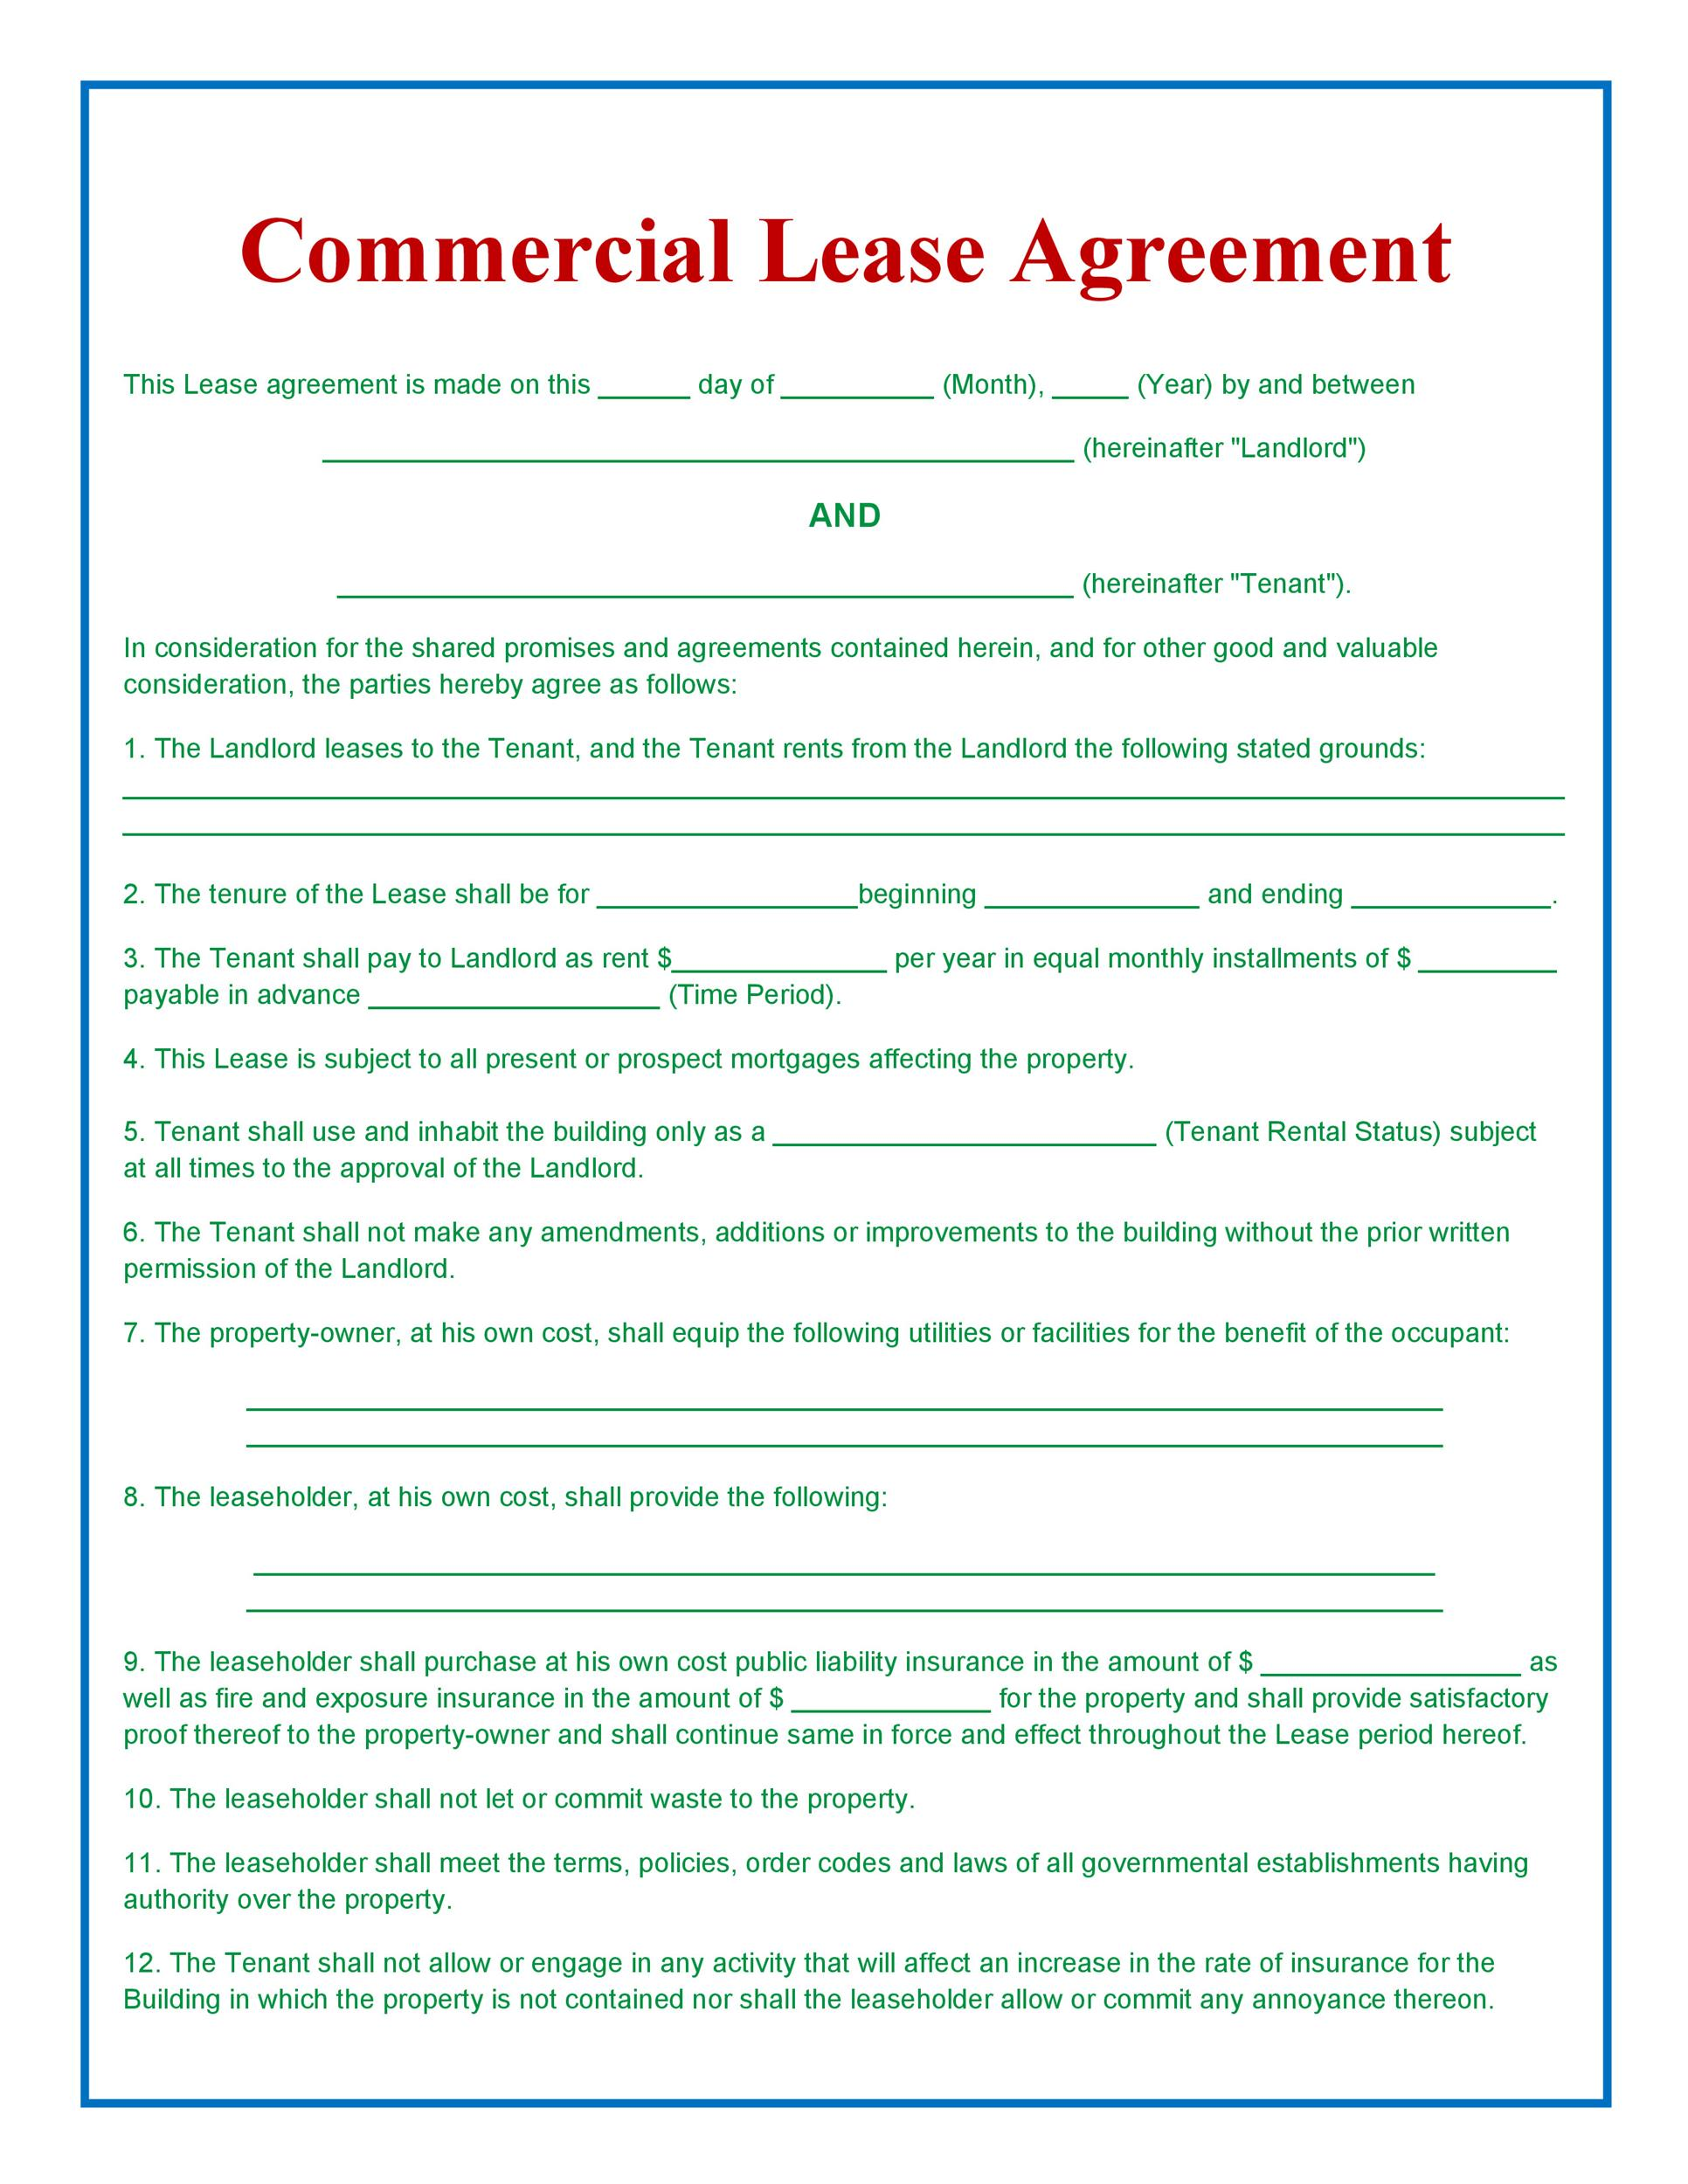 Home Lease Agreement Template Property Lease Agreement Free – Sample Commercial Lease Agreement Template